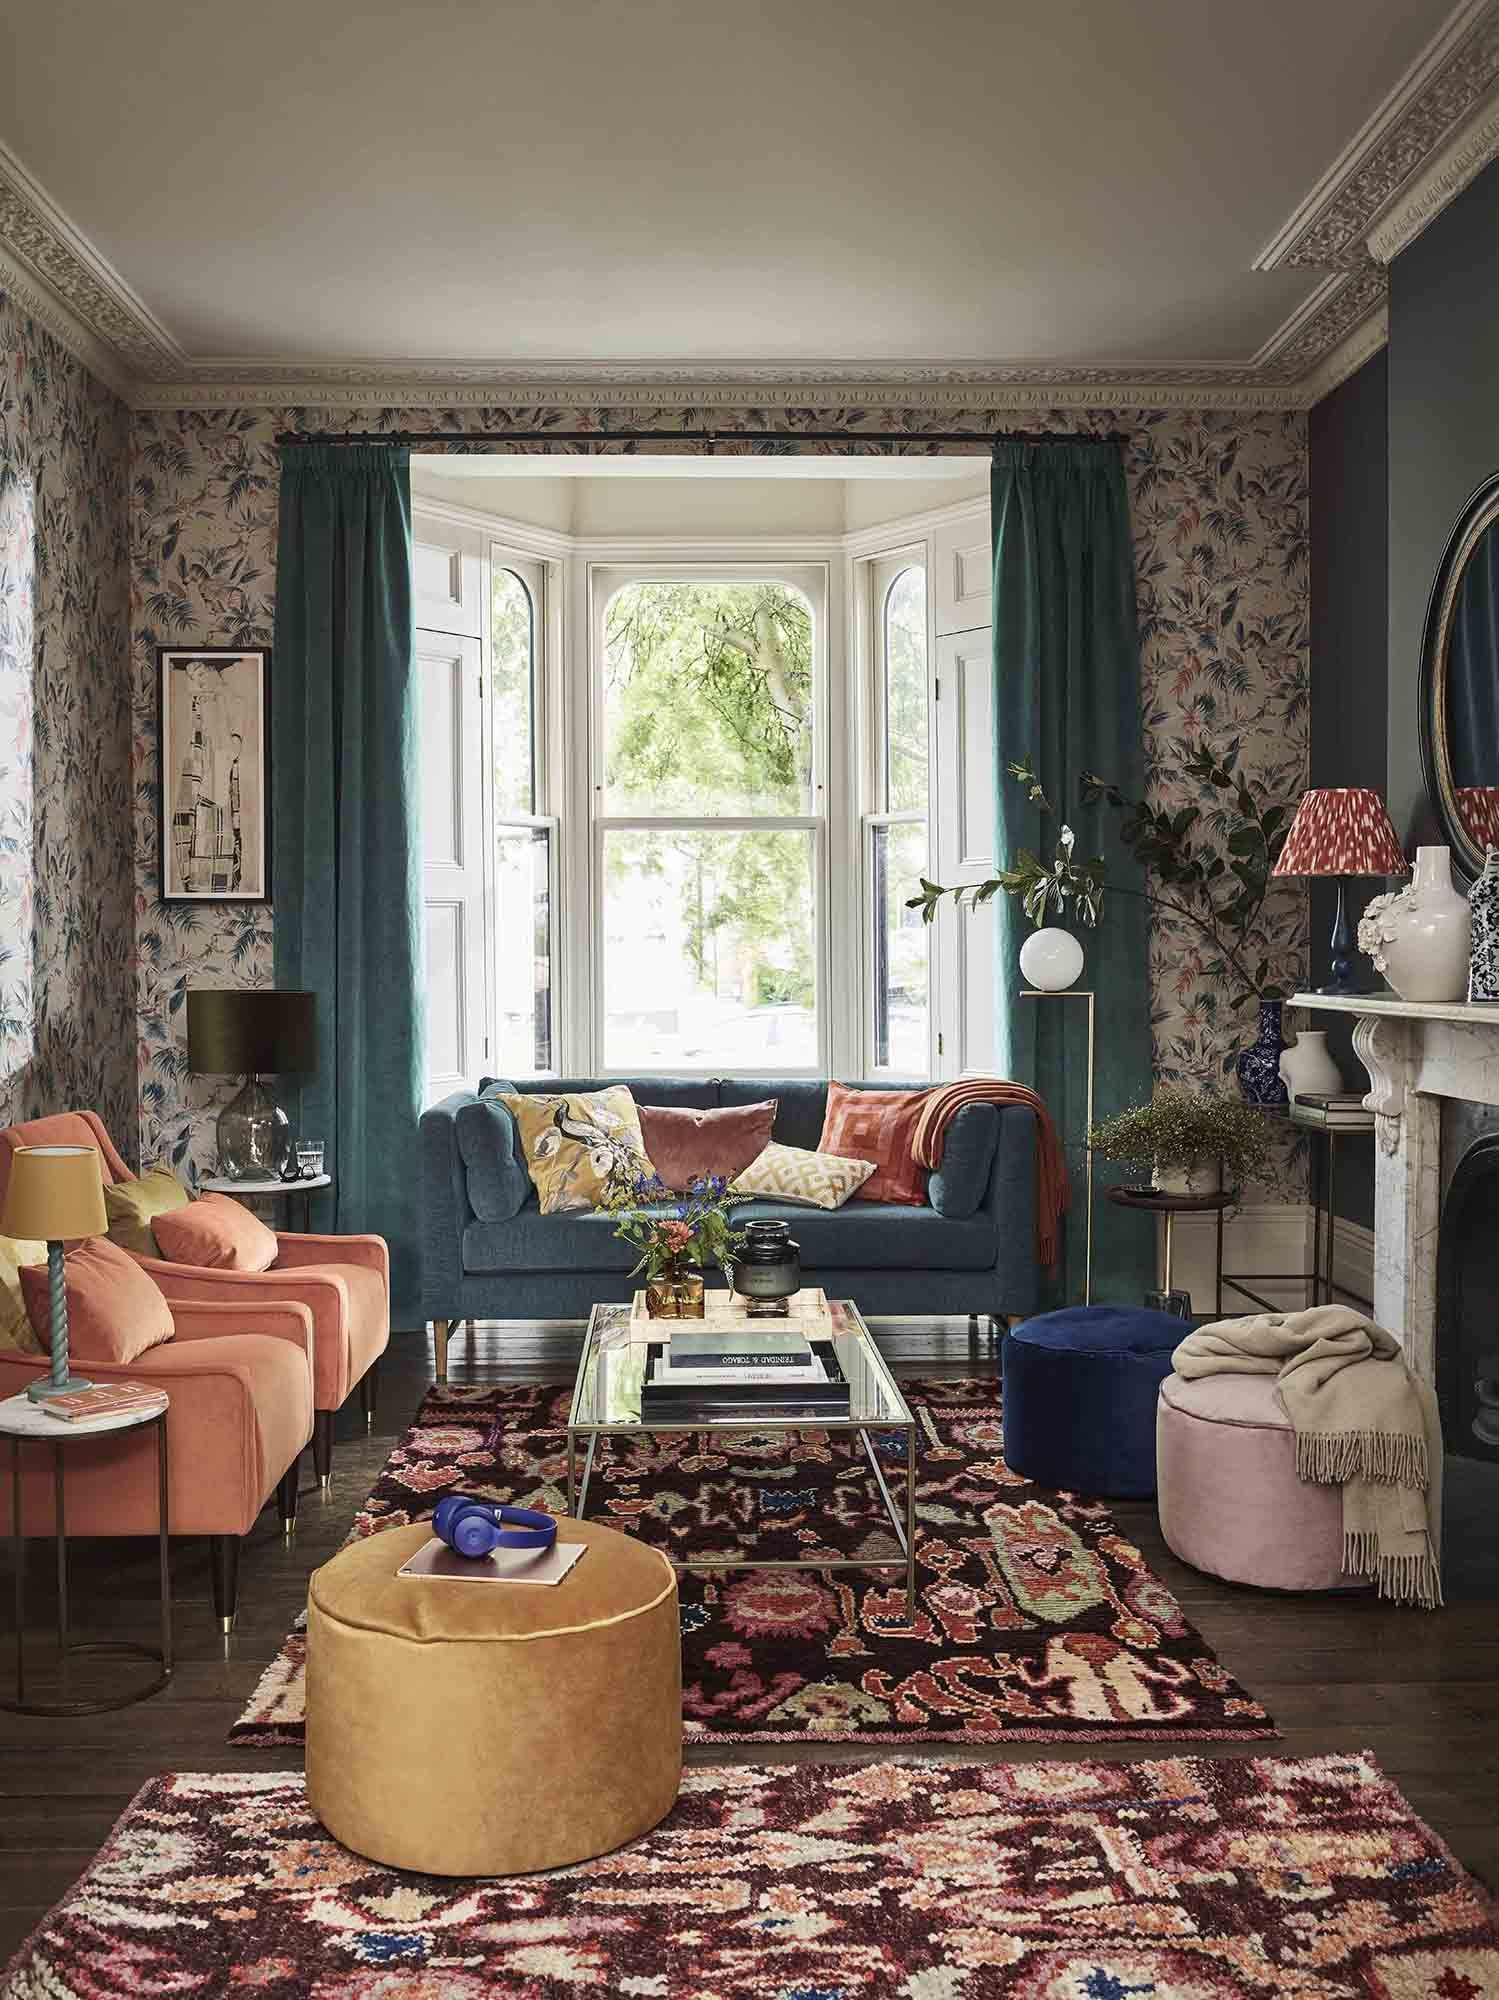 Top 10 Autumn Winter Interior Trends For 2020 In 2020 Living Room Trends Interior Interior Trend